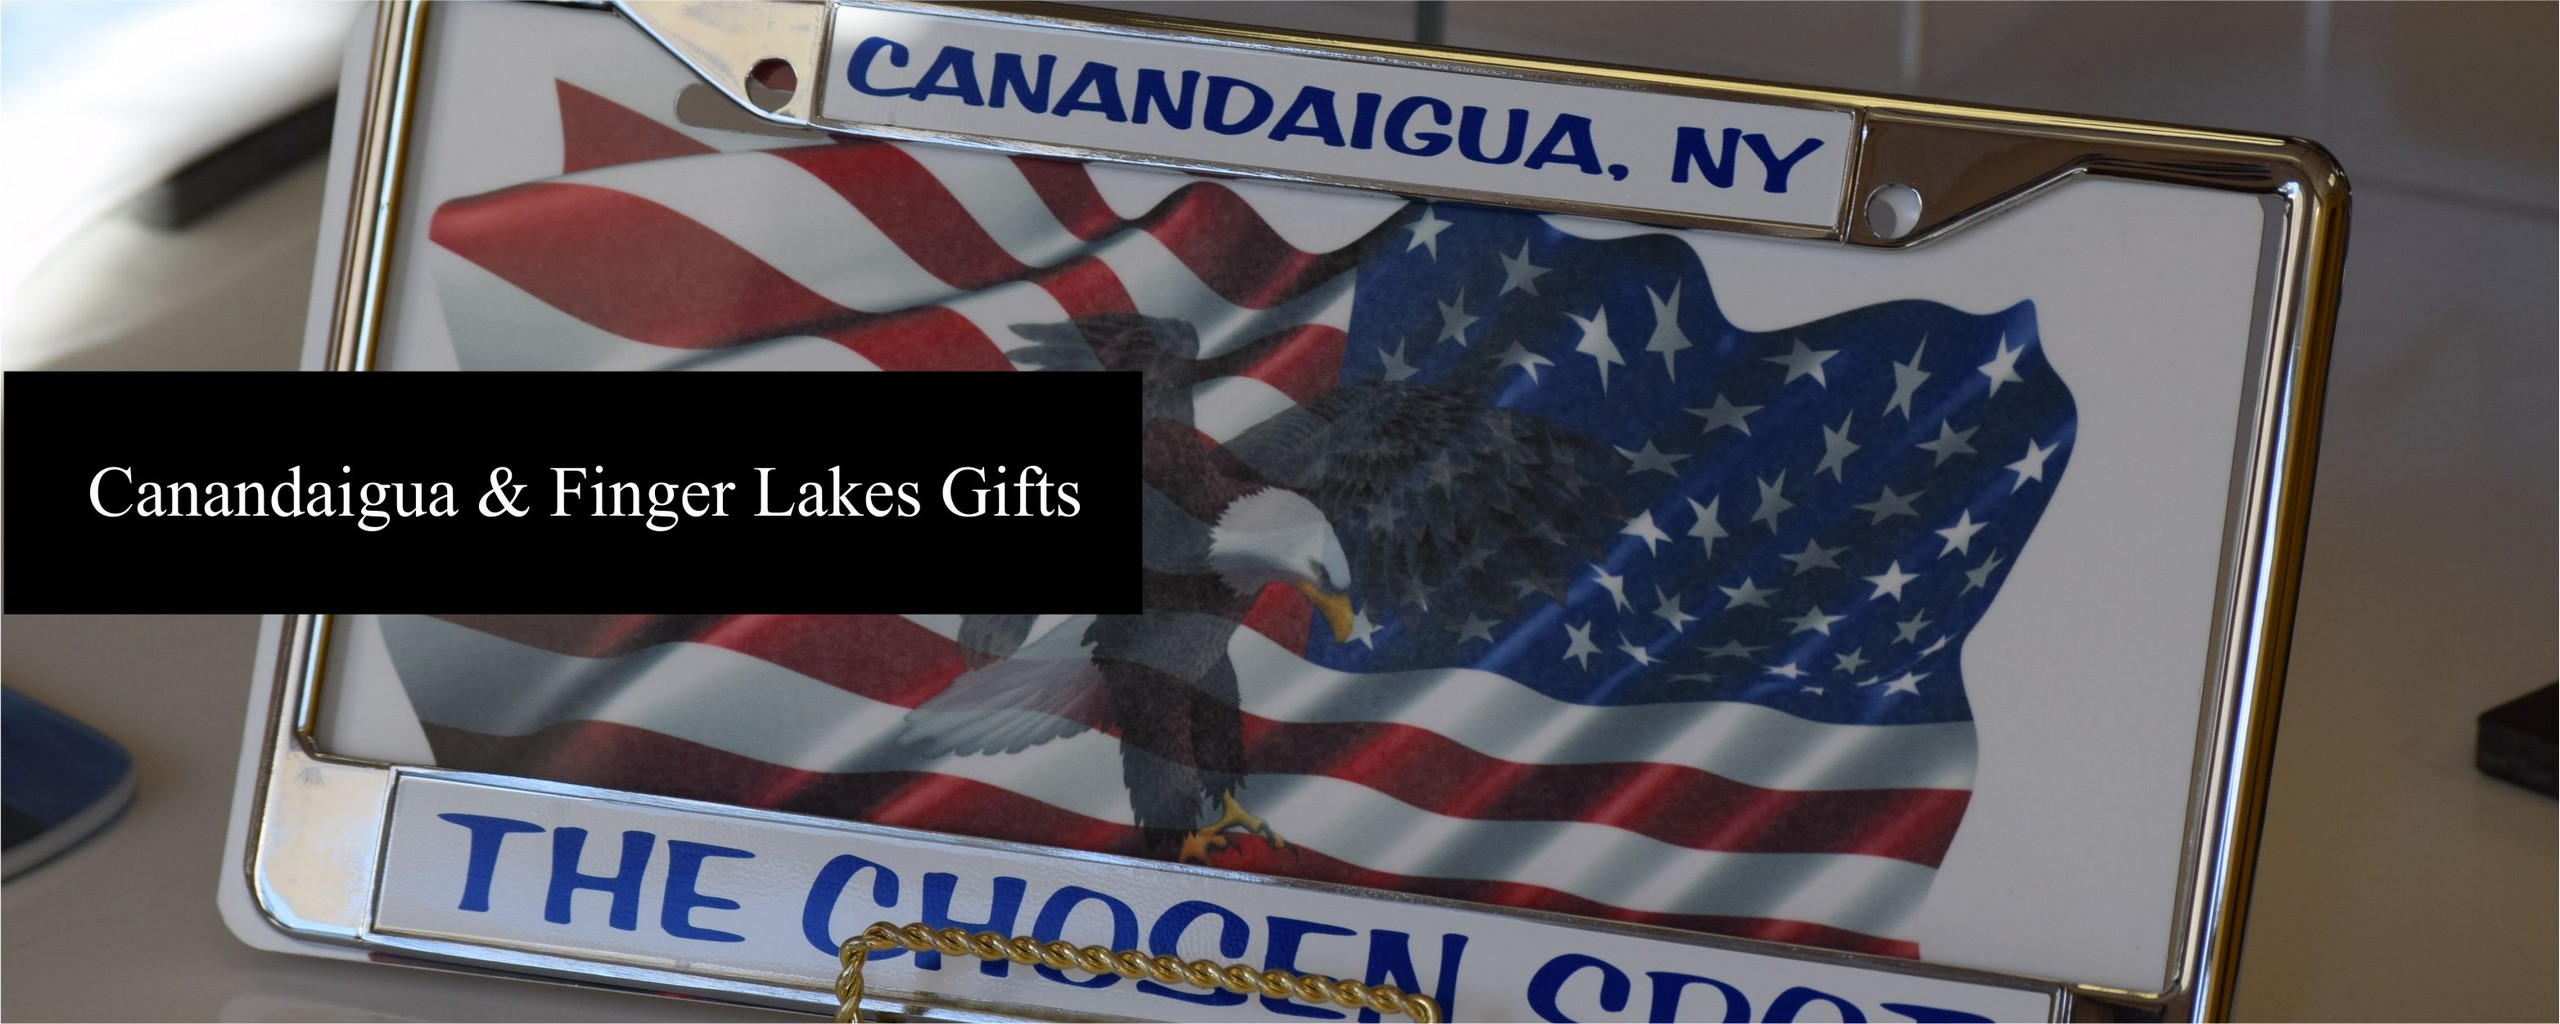 Canandaigua & Finger Lakes Gifts